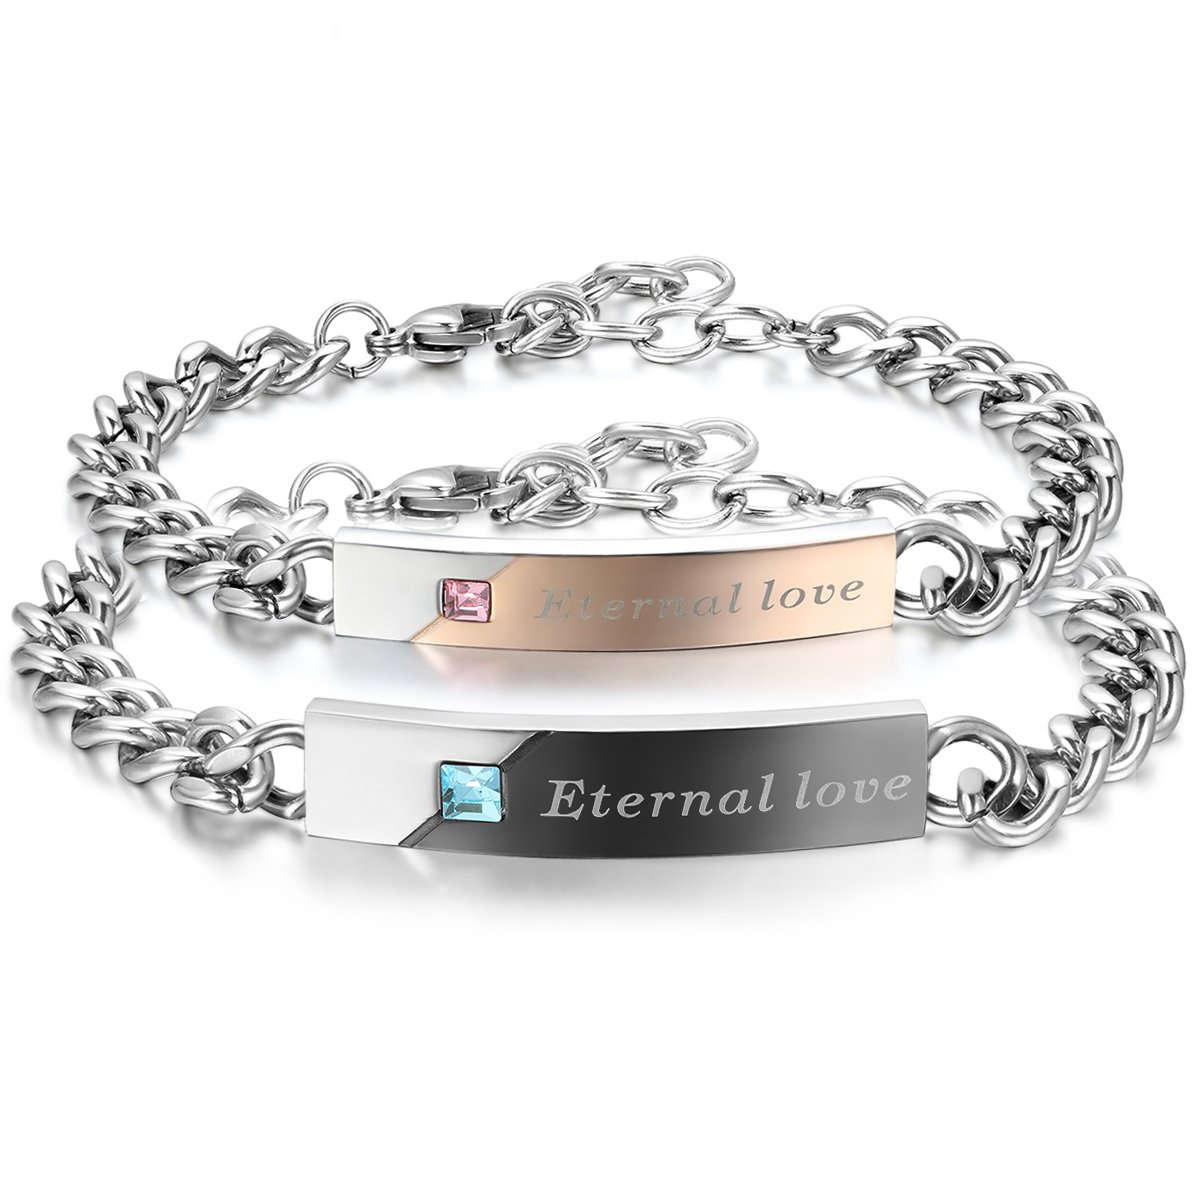 JewelryWe His Hers Stainless Steel Bangle Bracelet Eternal Love Valentine Promise Gift for Couple Christmas Cyber Monday Deal JW34PCA049